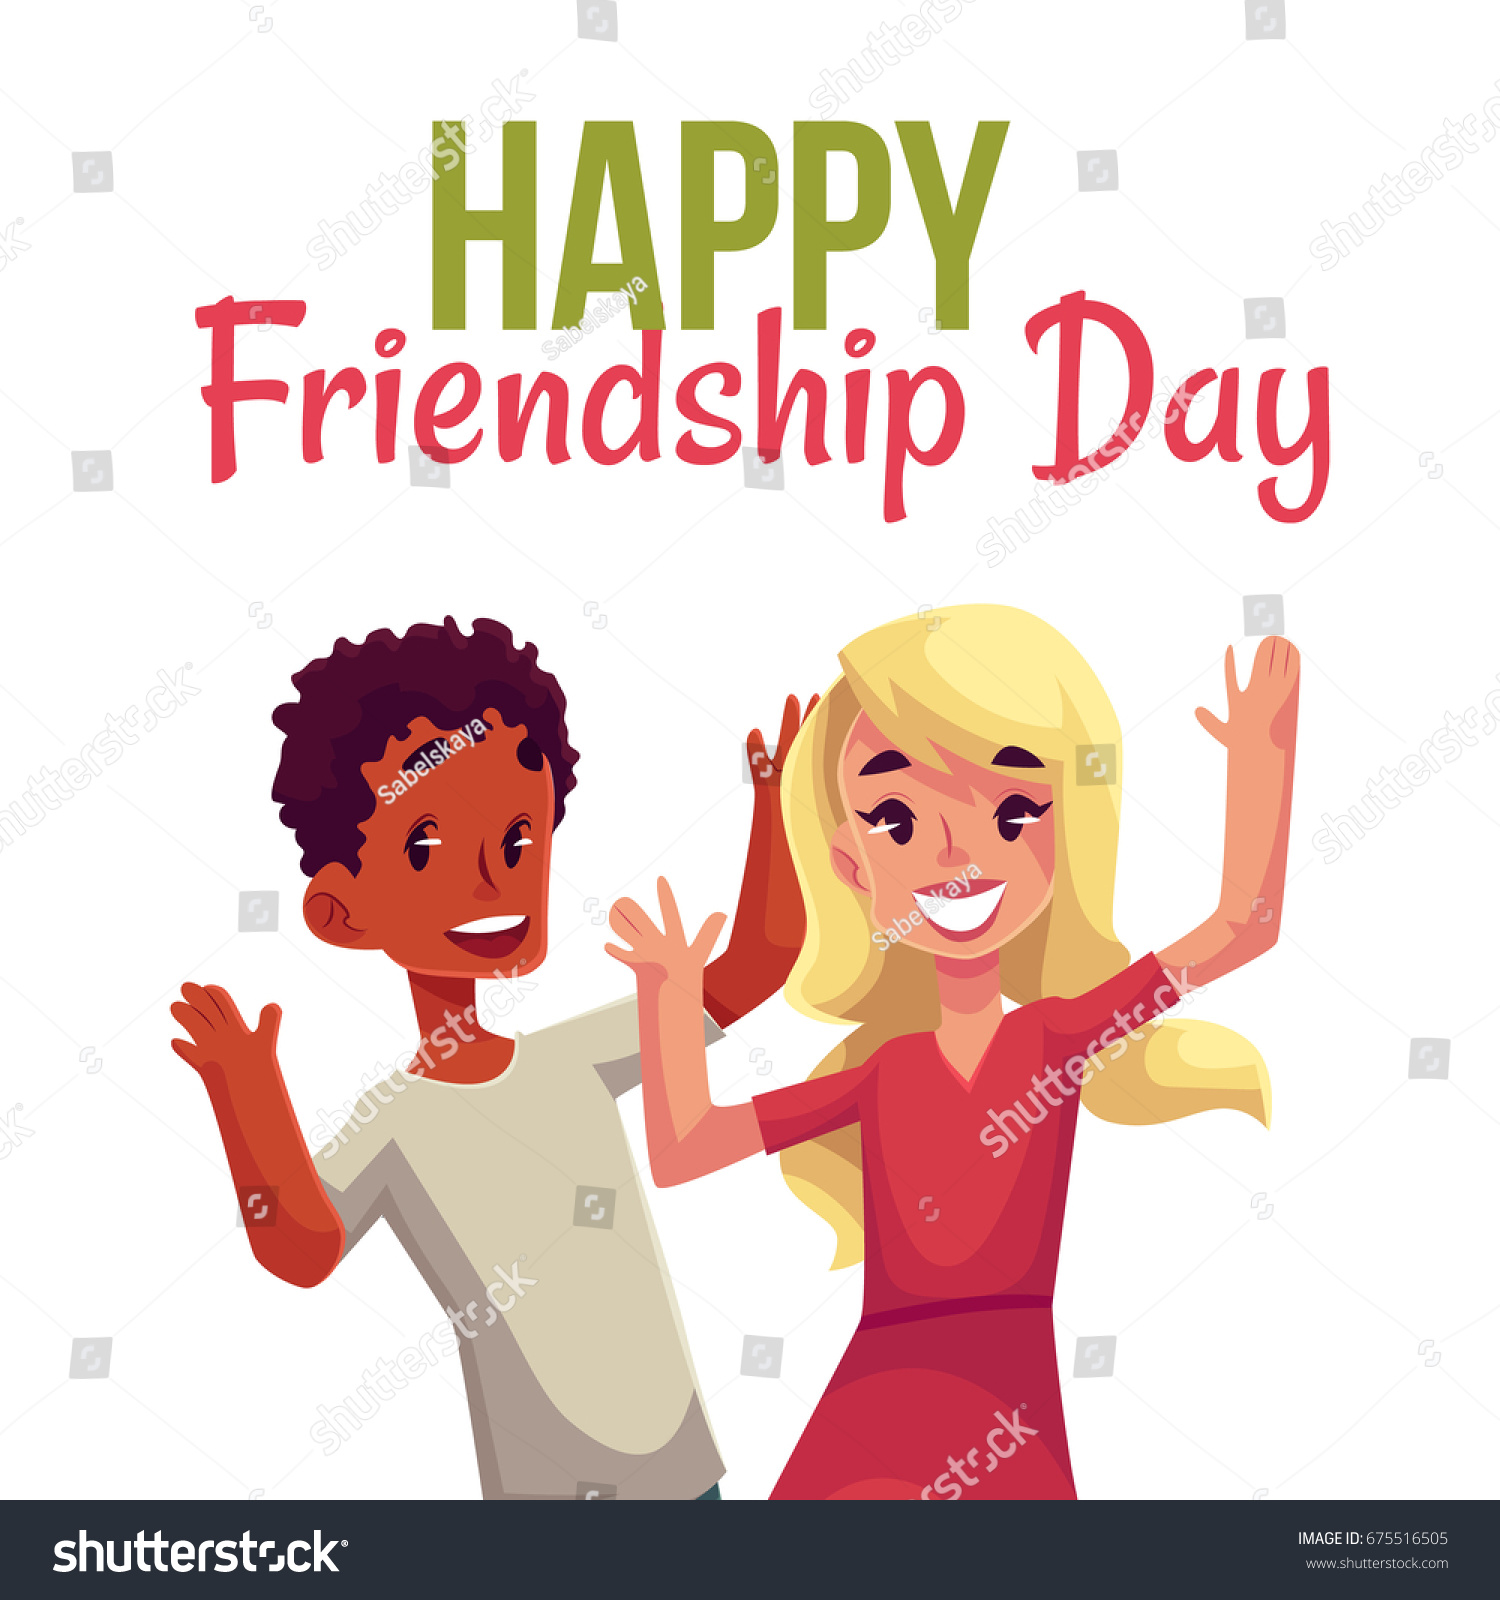 Happy Friendship Day Greeting Card Design Stock Vector Royalty Free